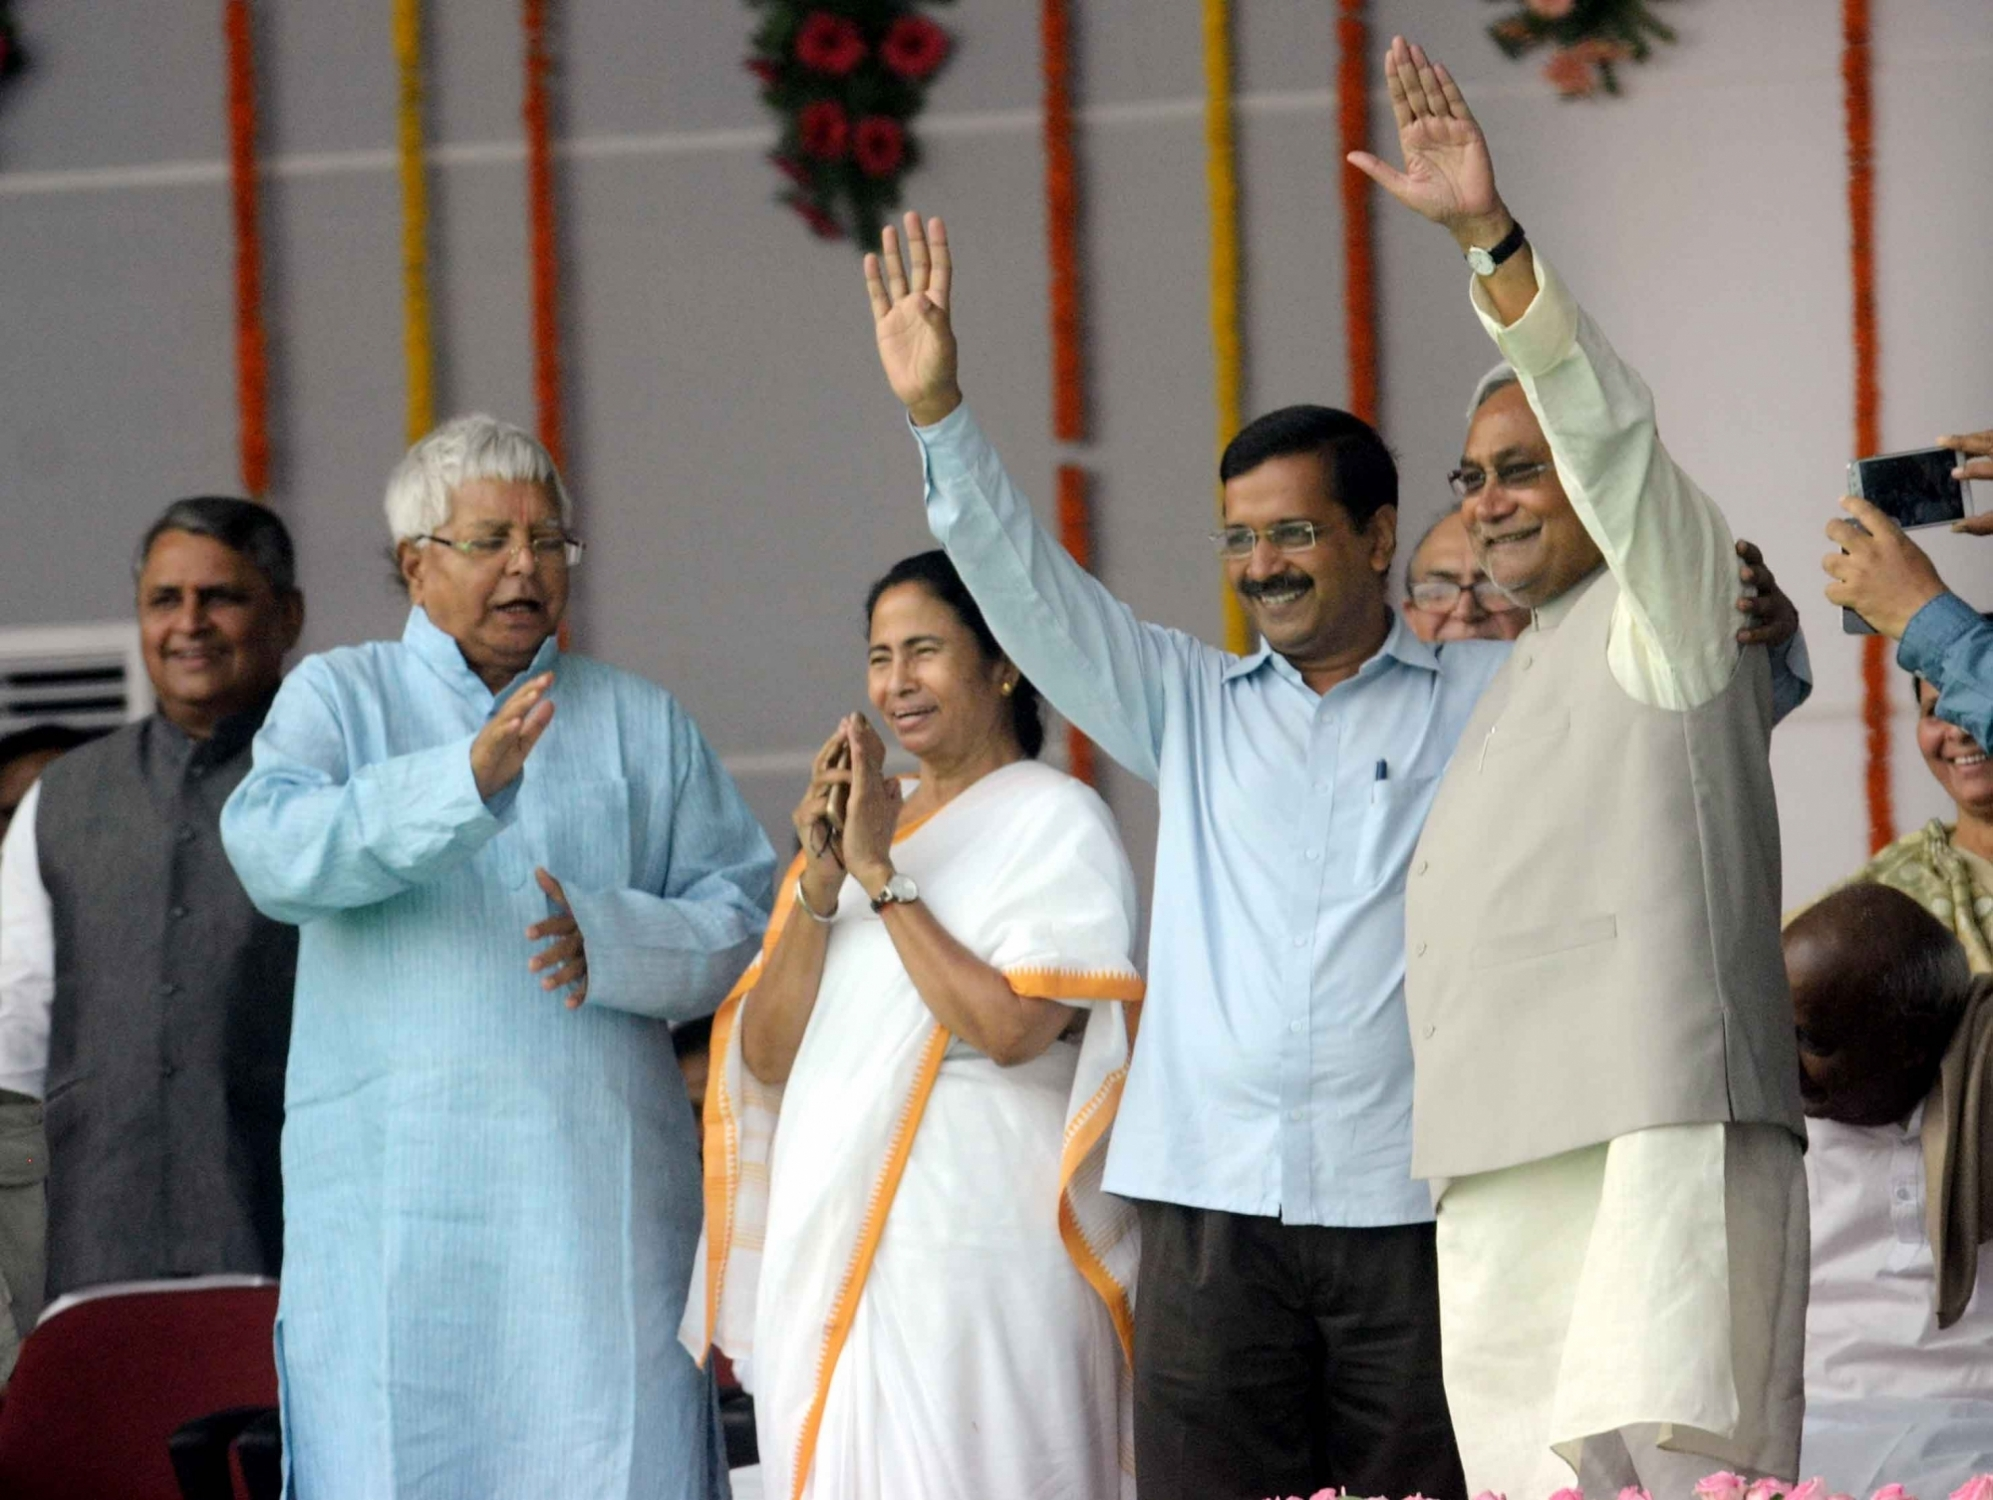 Bihar Chief Minister Nitish Kumar with Delhi Chief Minister Arvind Kejriwal, West Bengal Chief Minister Mamata Banerjee and RJD chief Lalu Prasad Yadav during the swearing in ceremony of the Nitish Kumar government in Bihar in November 2015. Image: PTI